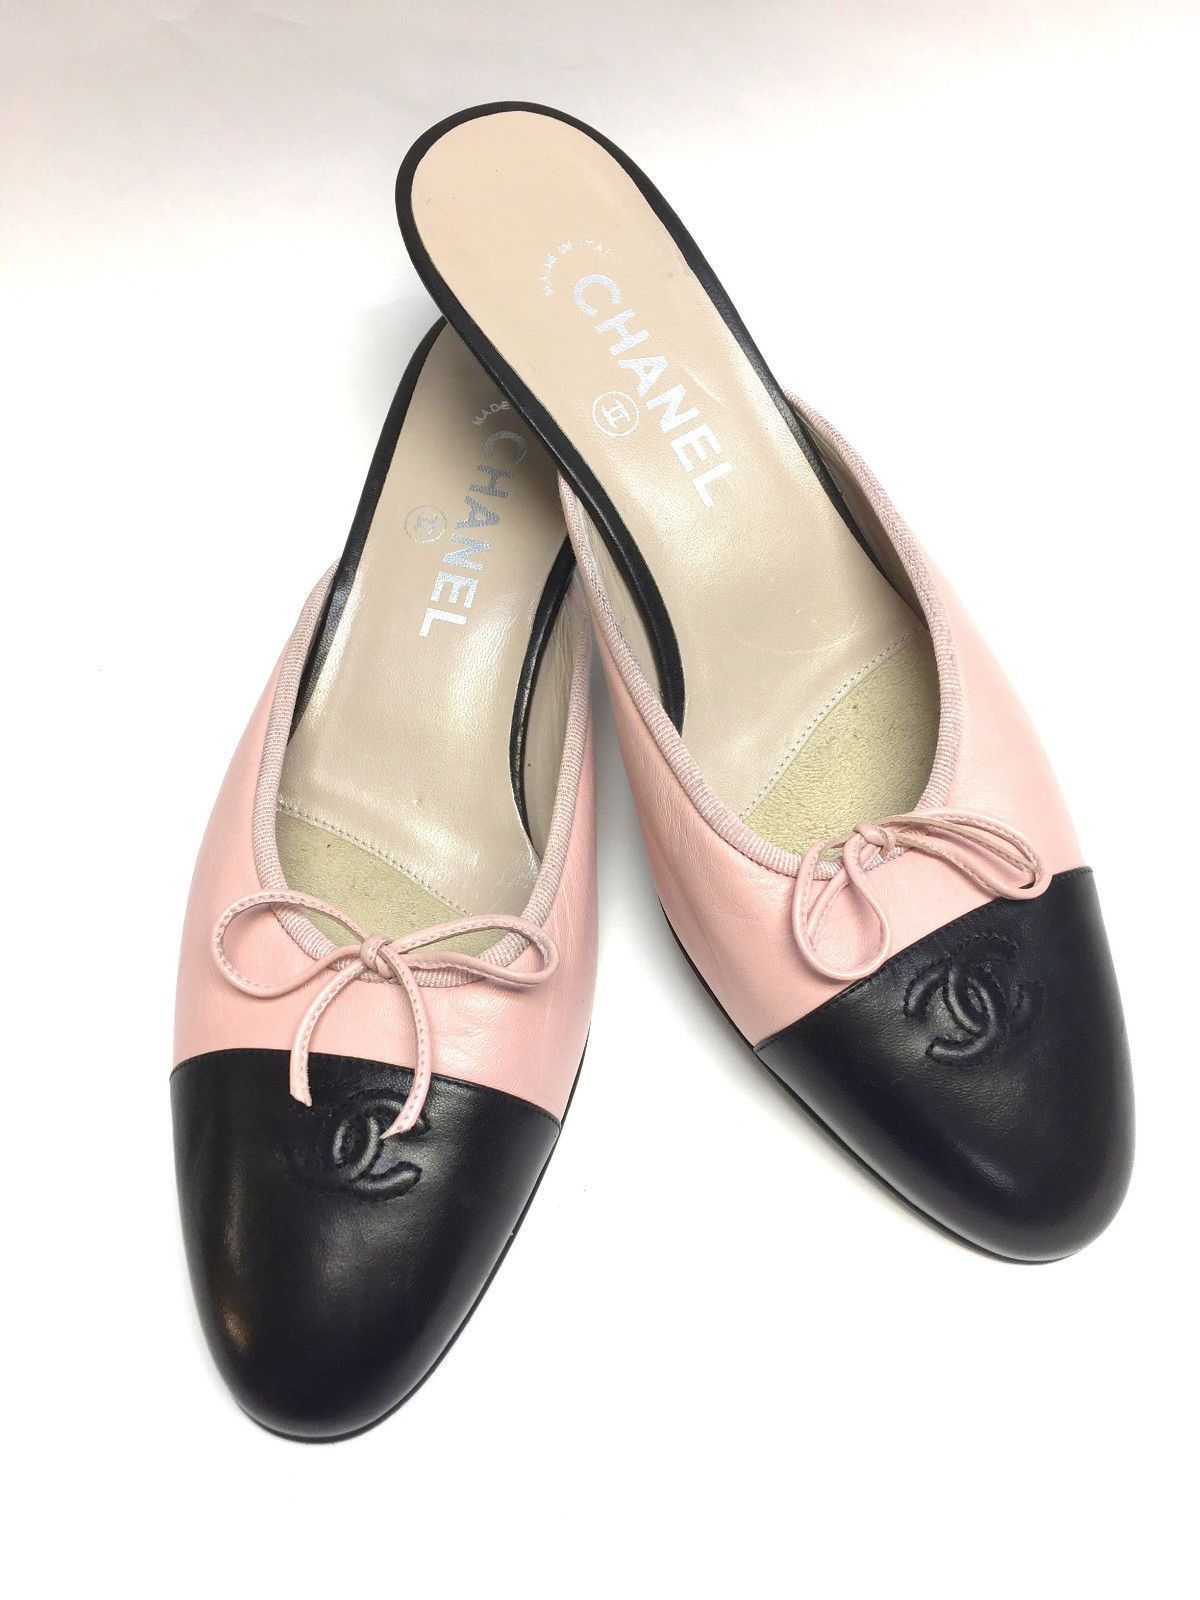 056f5674273b0b CHANEL Pink Leather Kitten Heel Slip-On Ballet Mules with Black Leather Cap  Toe Size  40   10